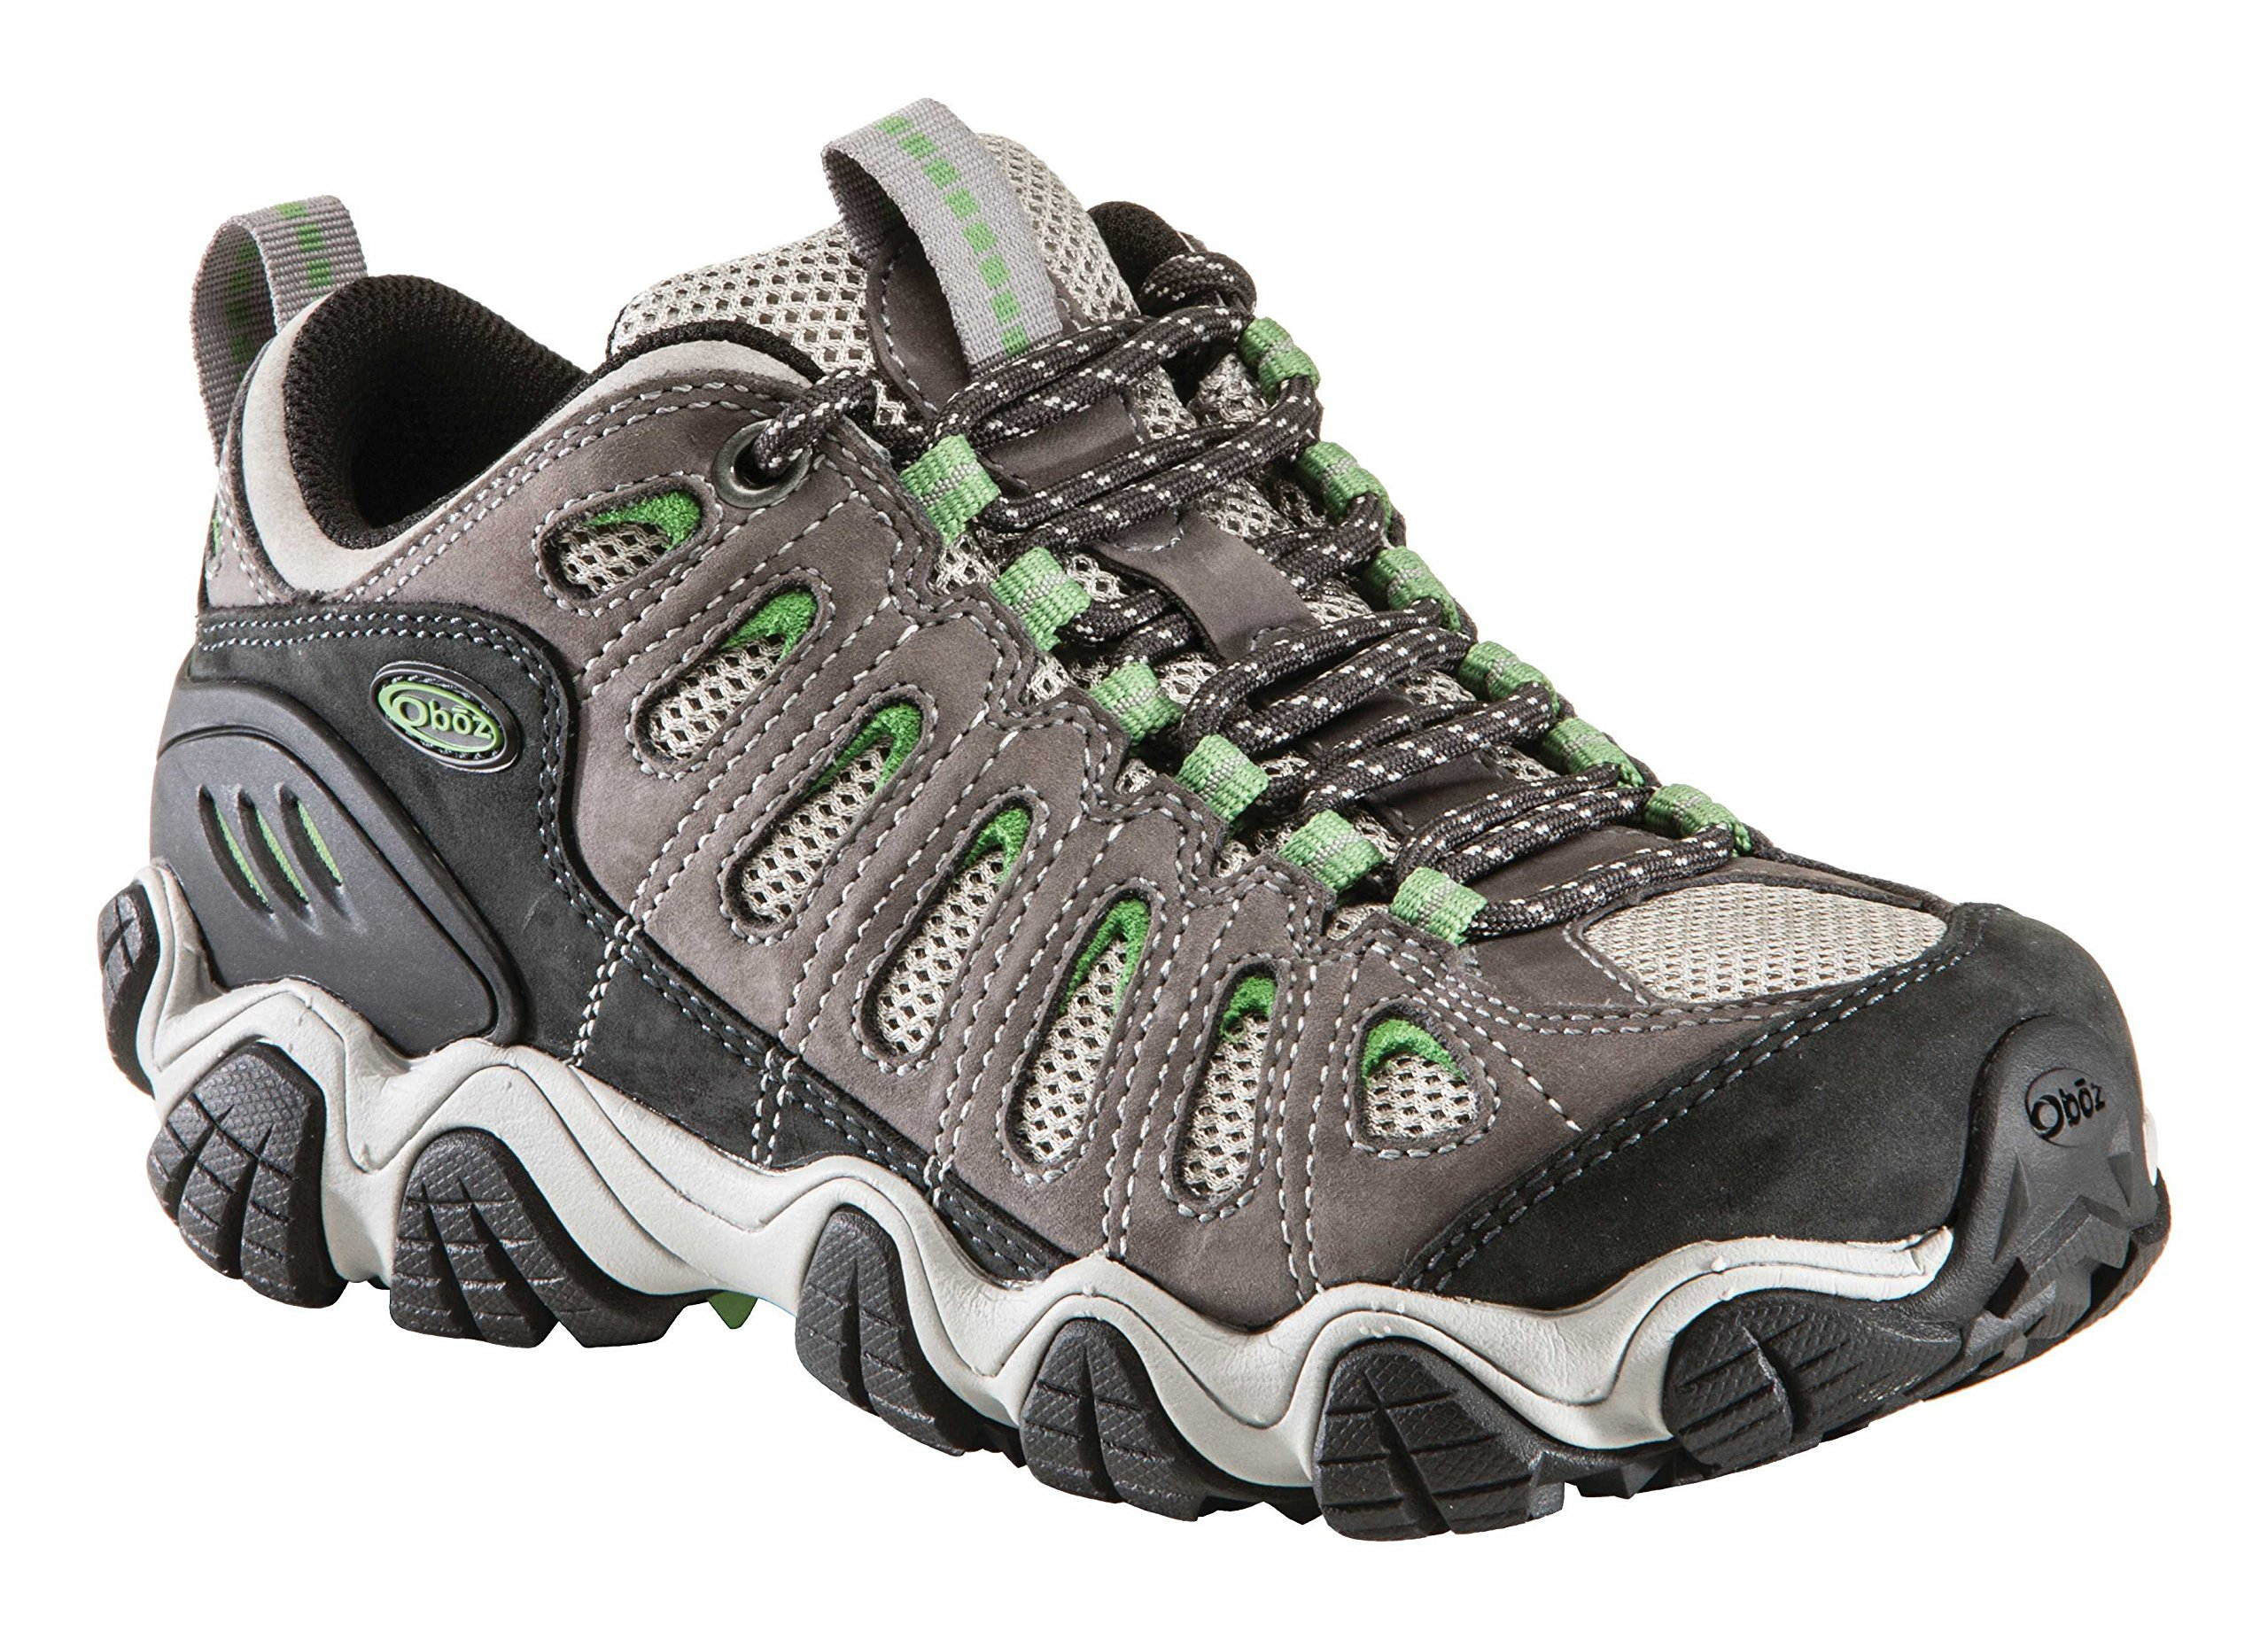 Oboz Women's Sawtooth Low Hiking Shoe,Clover,7 M US by Oboz (Image #1)